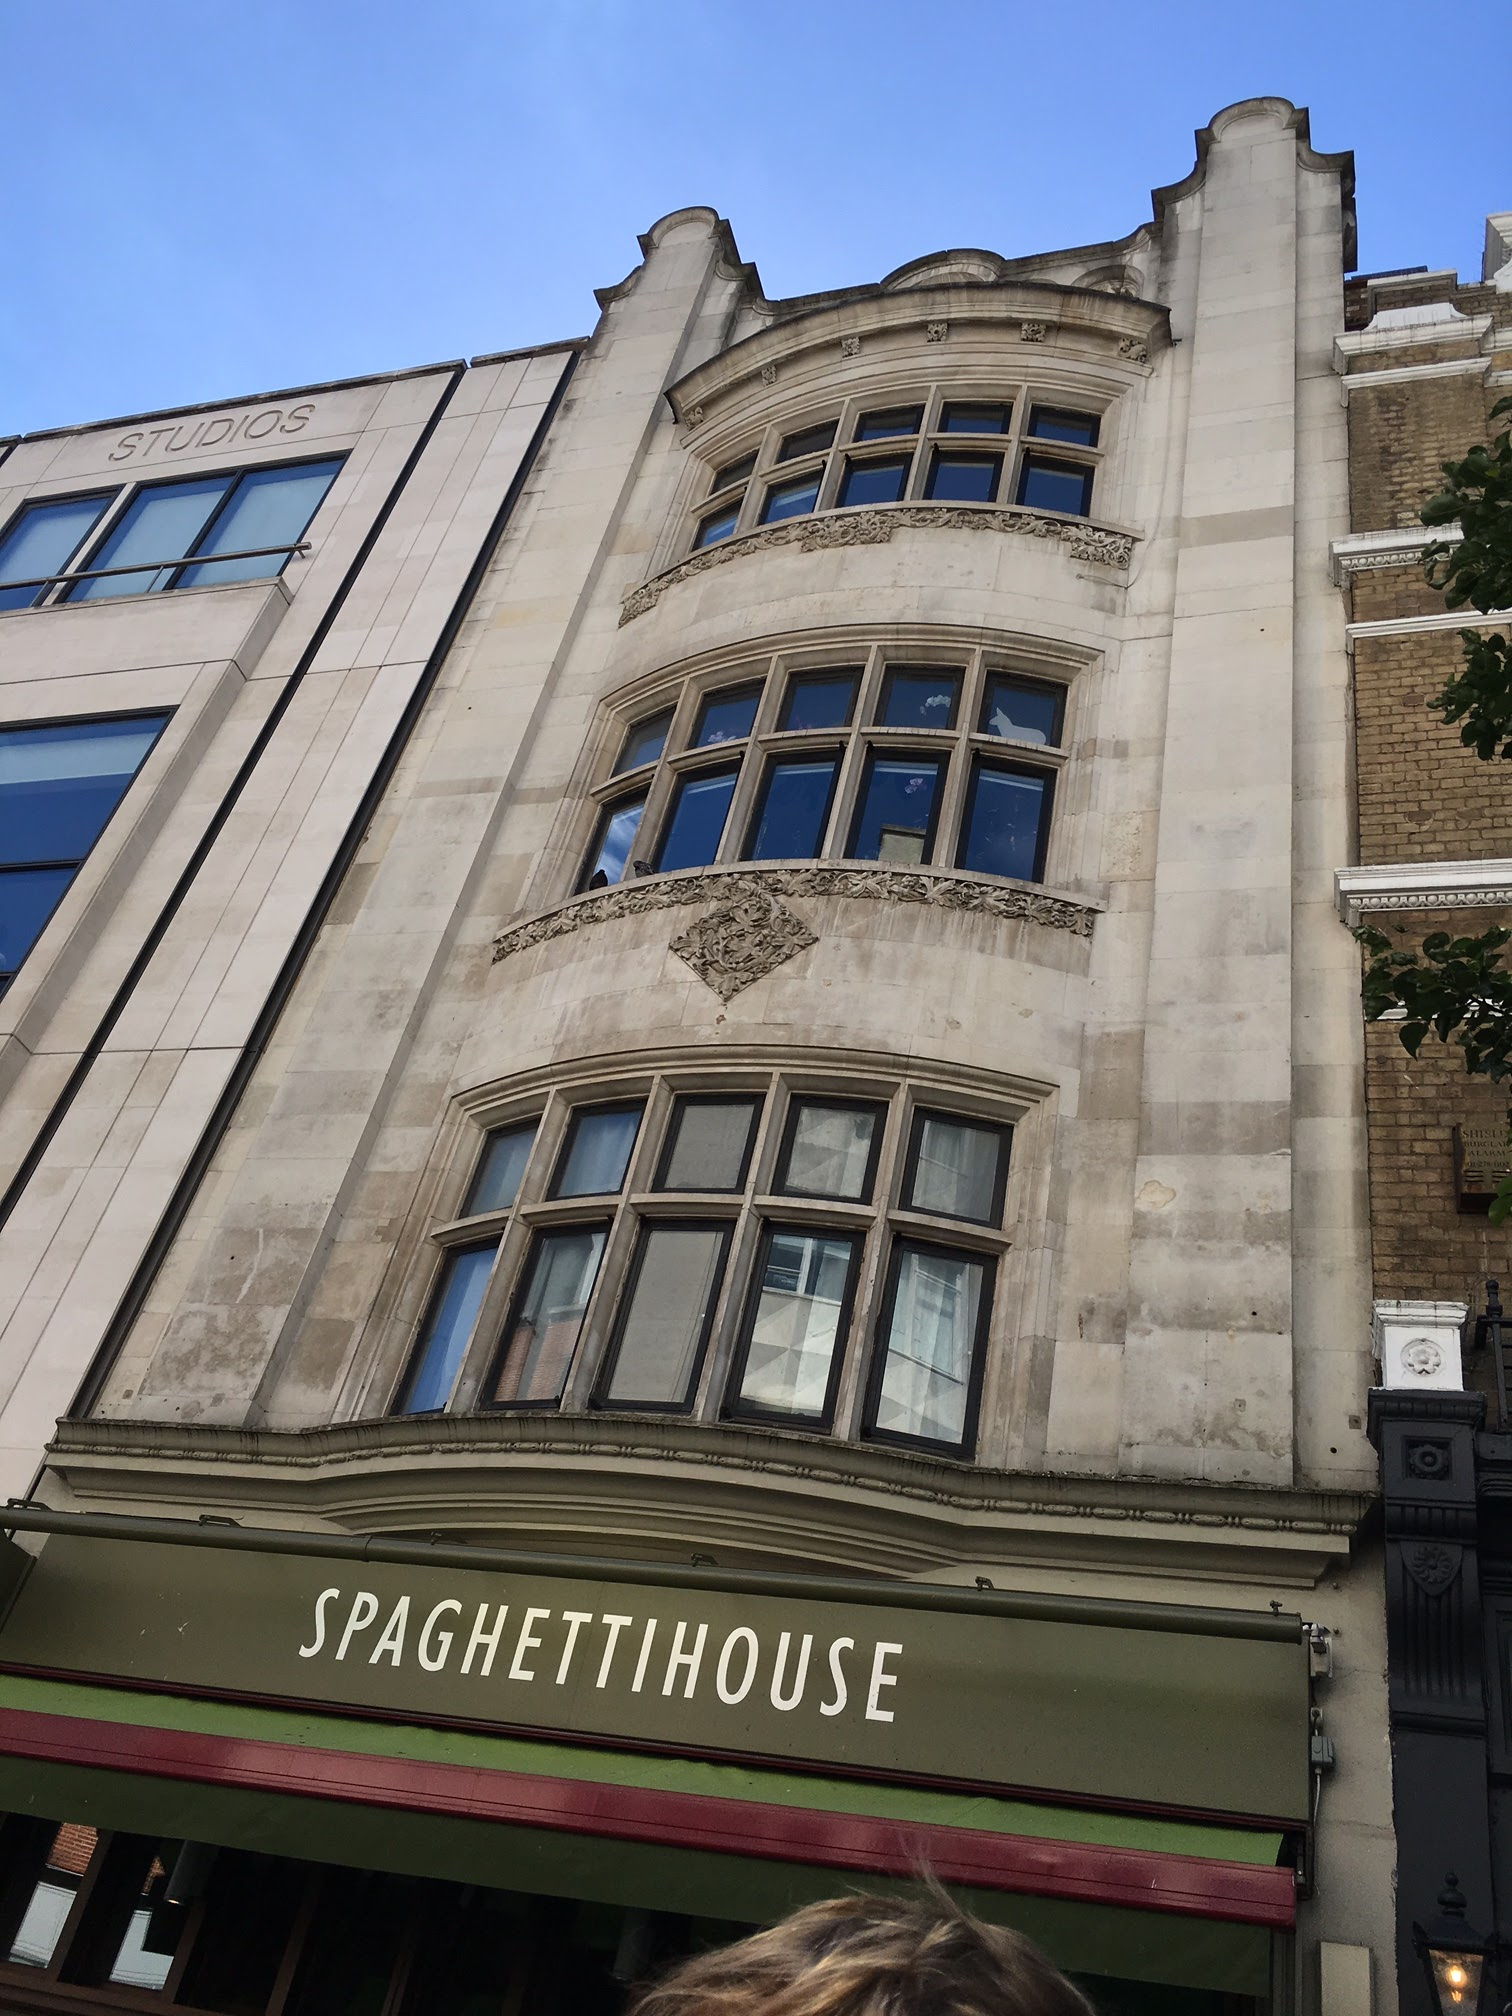 The Spaghetti House, Oxford Street